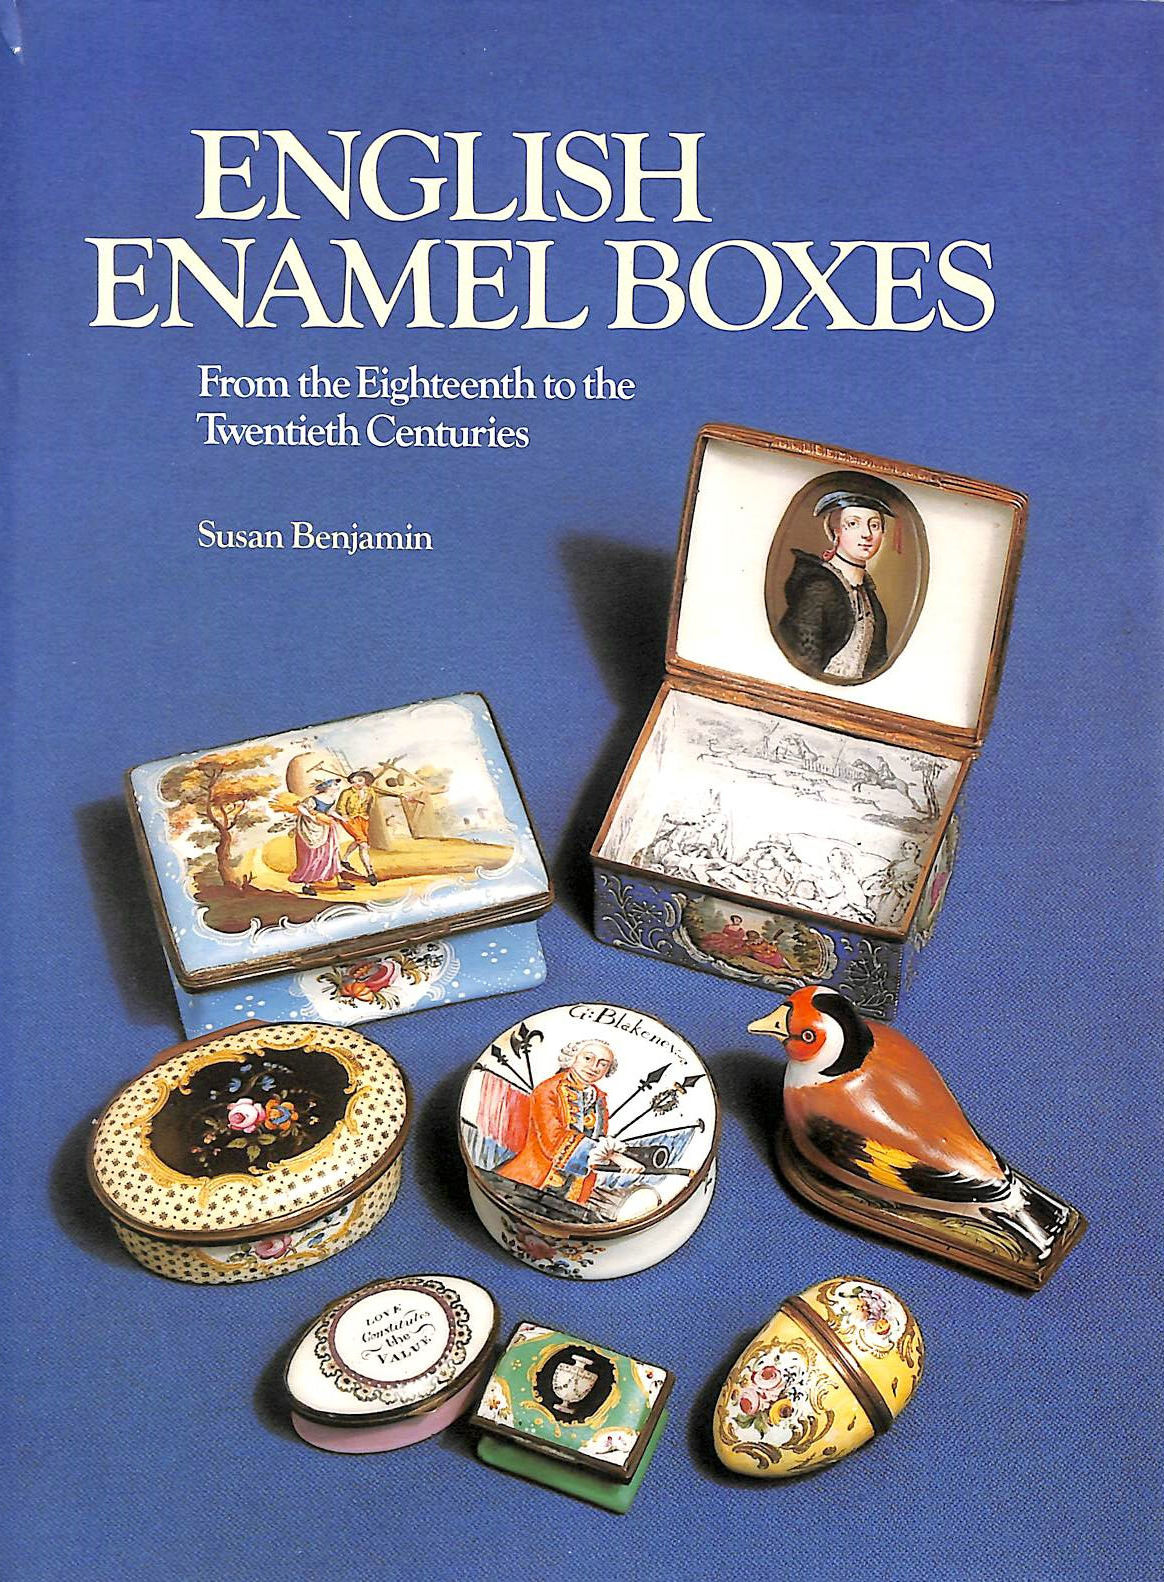 Image for English Enamel Boxes: From the Eighteenth to the Twentieth Centuries